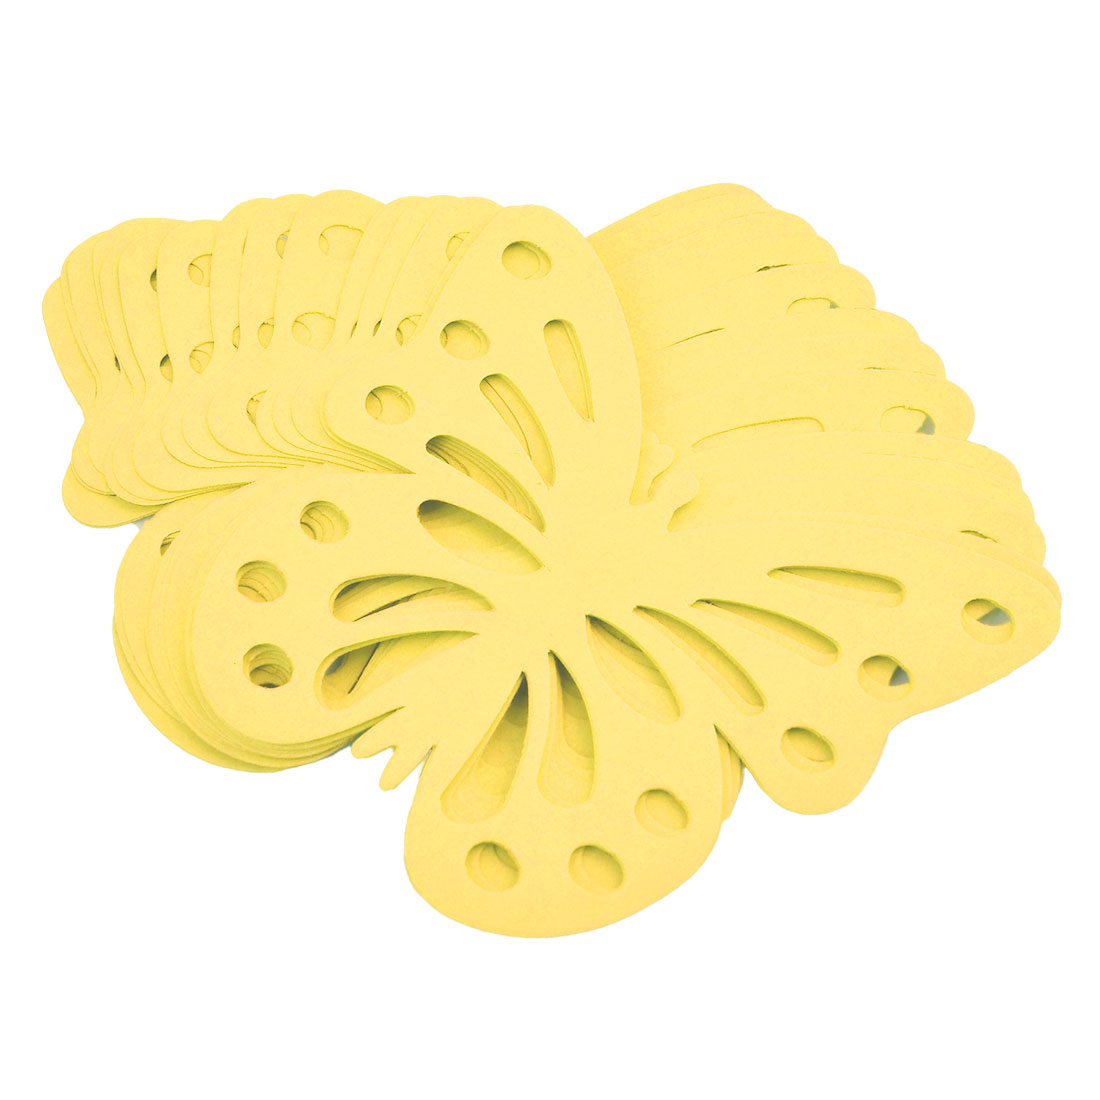 Paper Butterfly Design Self-adhesive 3D Wall Decorative Sticker Yellow 24pcs